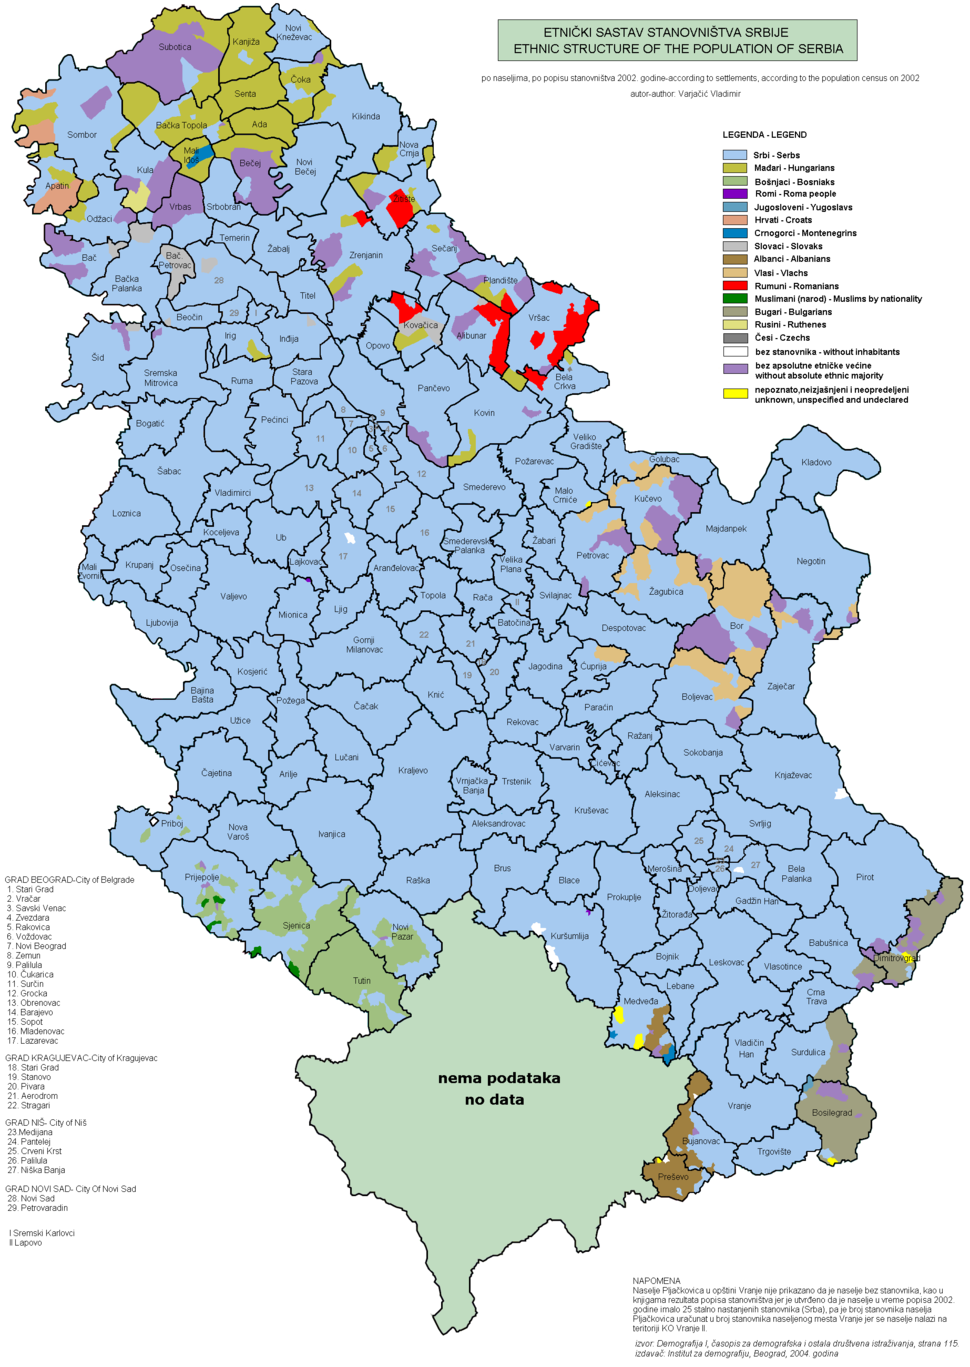 Census 2002 Serbia, ethnic map (by municipalities)